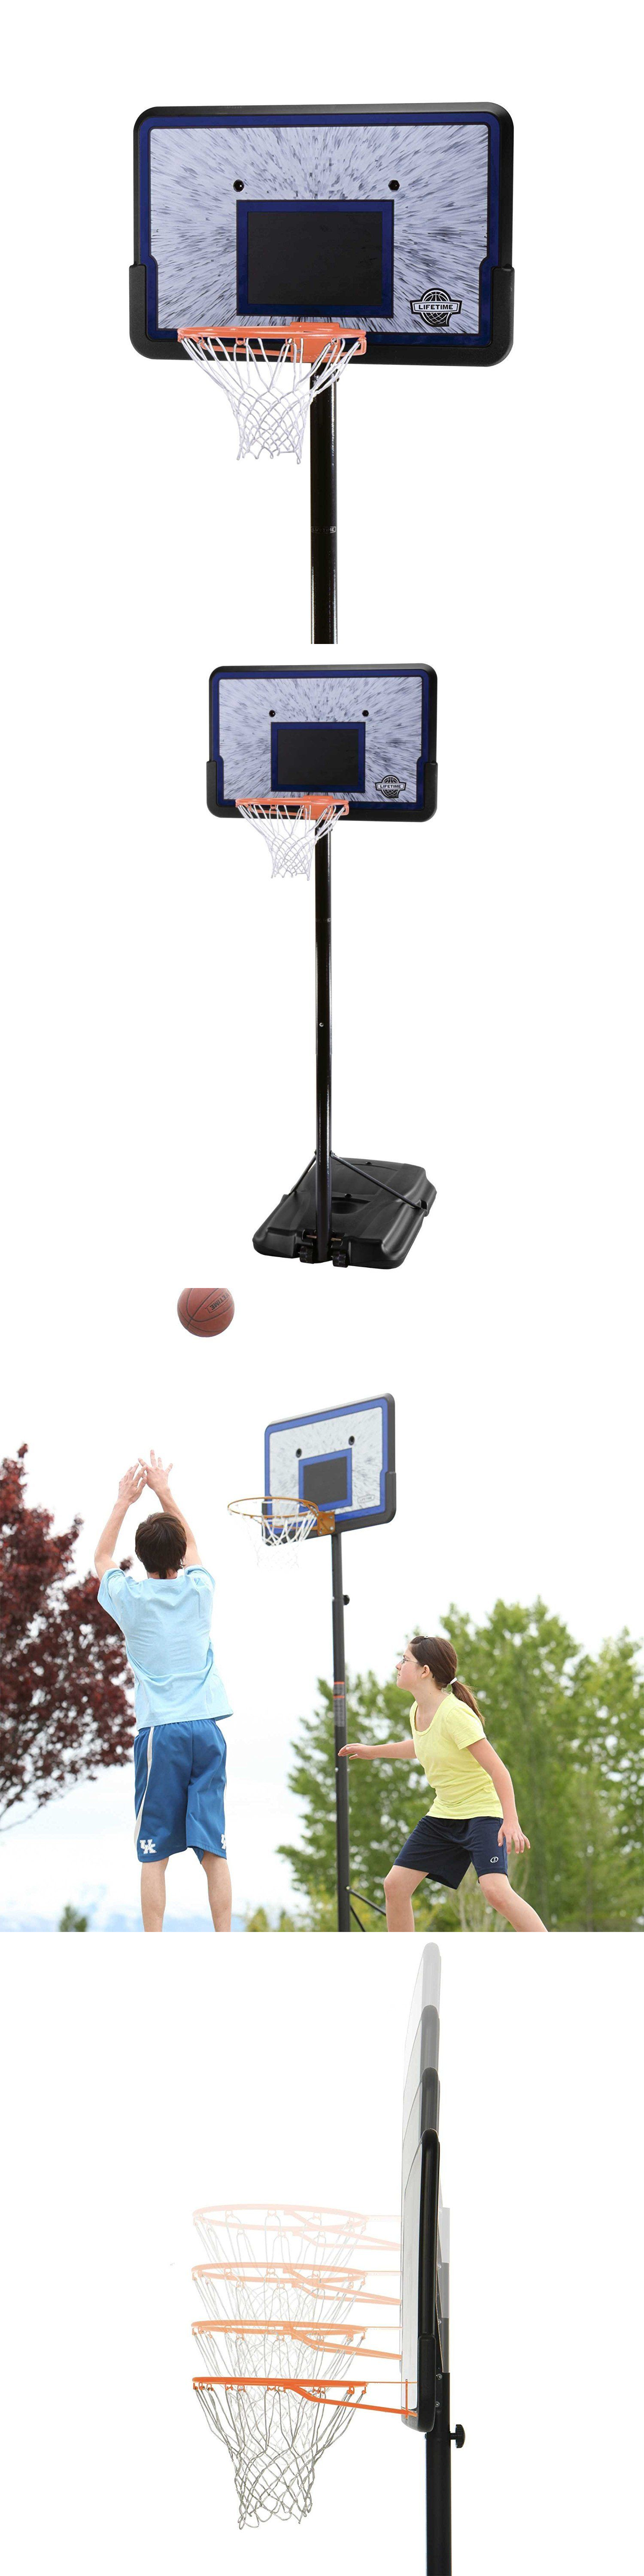 backboard systems 21196 portable lifetime 1221 pro court height